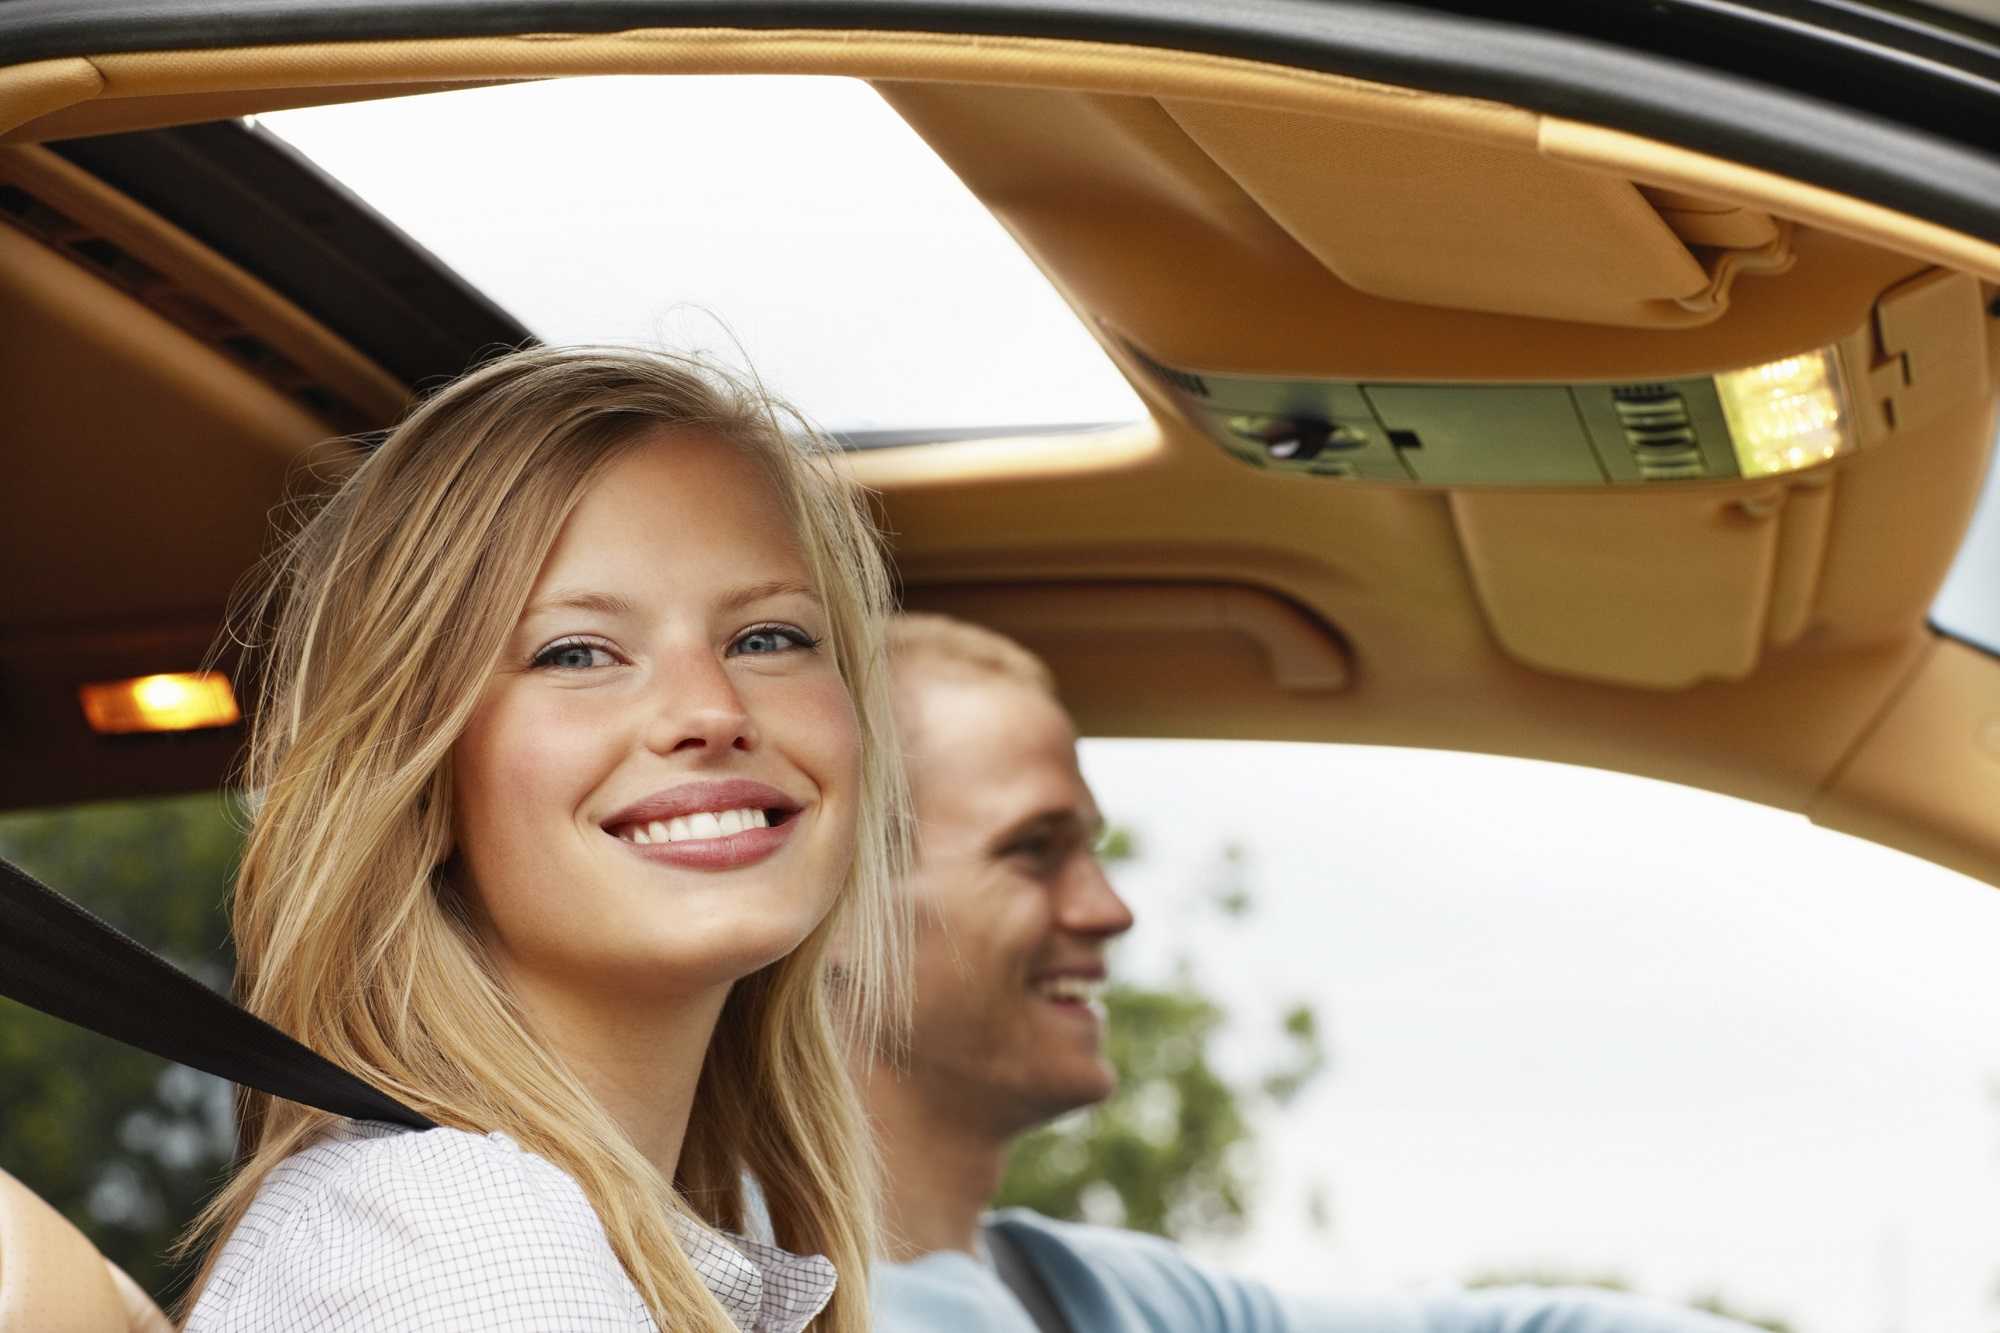 Used Cars for Sale near Joliet, IL